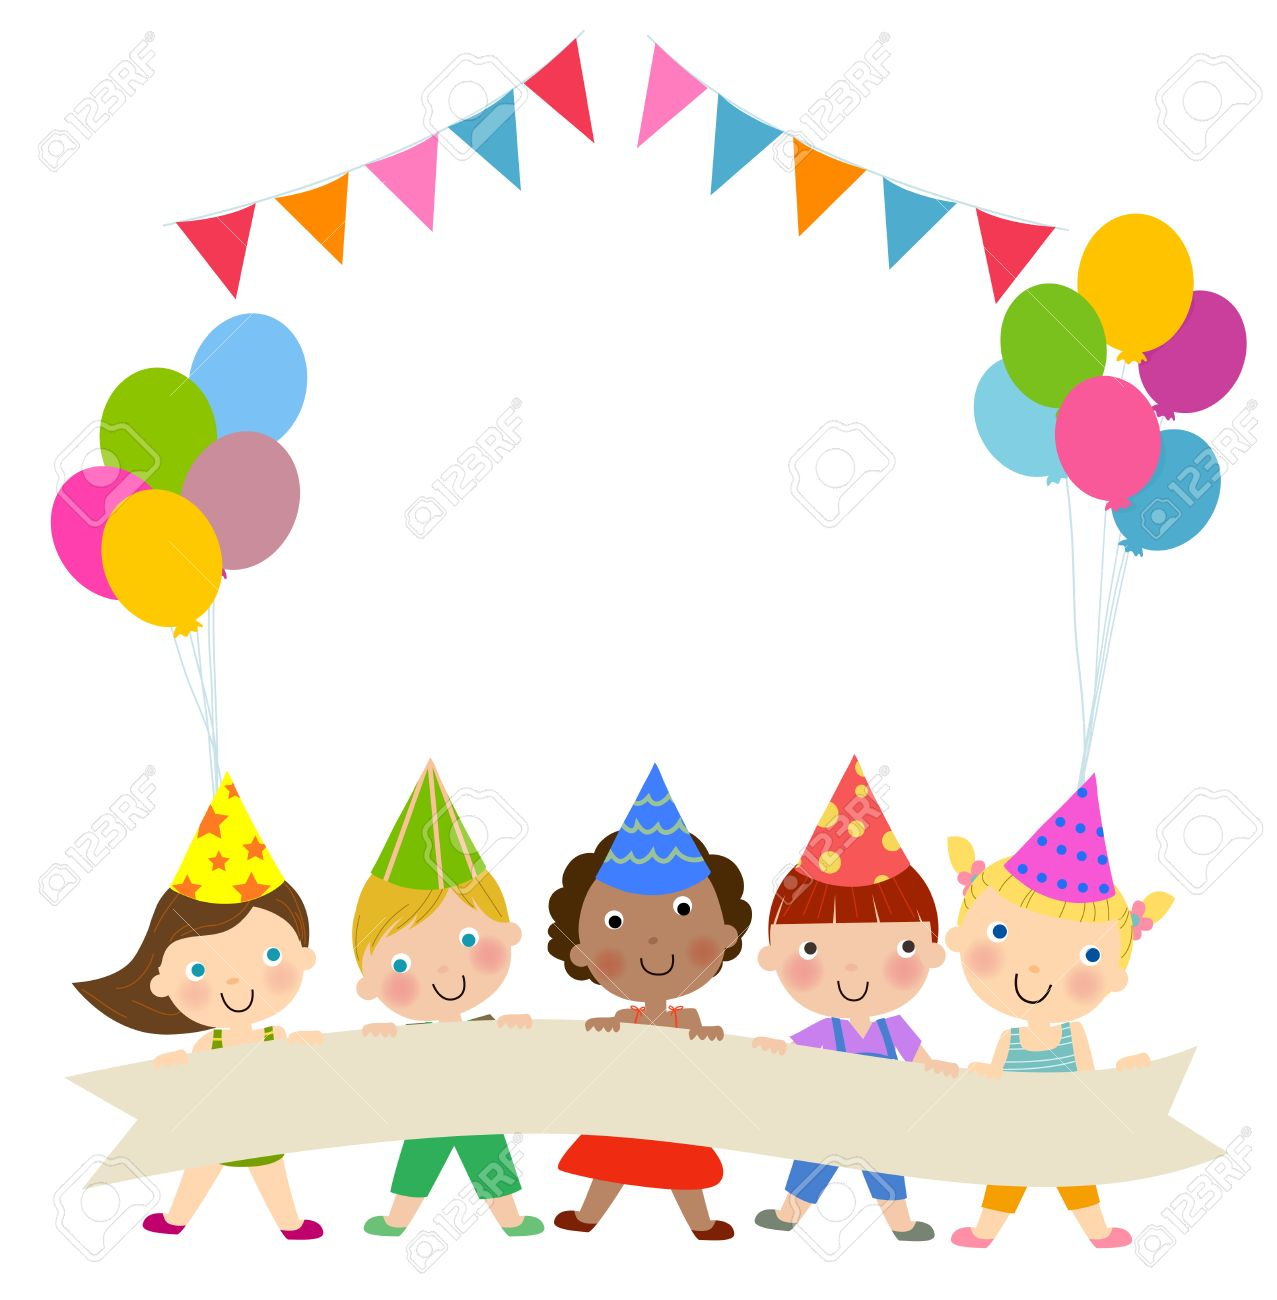 Group Of Children And Birthday Party Royalty Free Cliparts Vectors And Stock Illustration Image 39096511